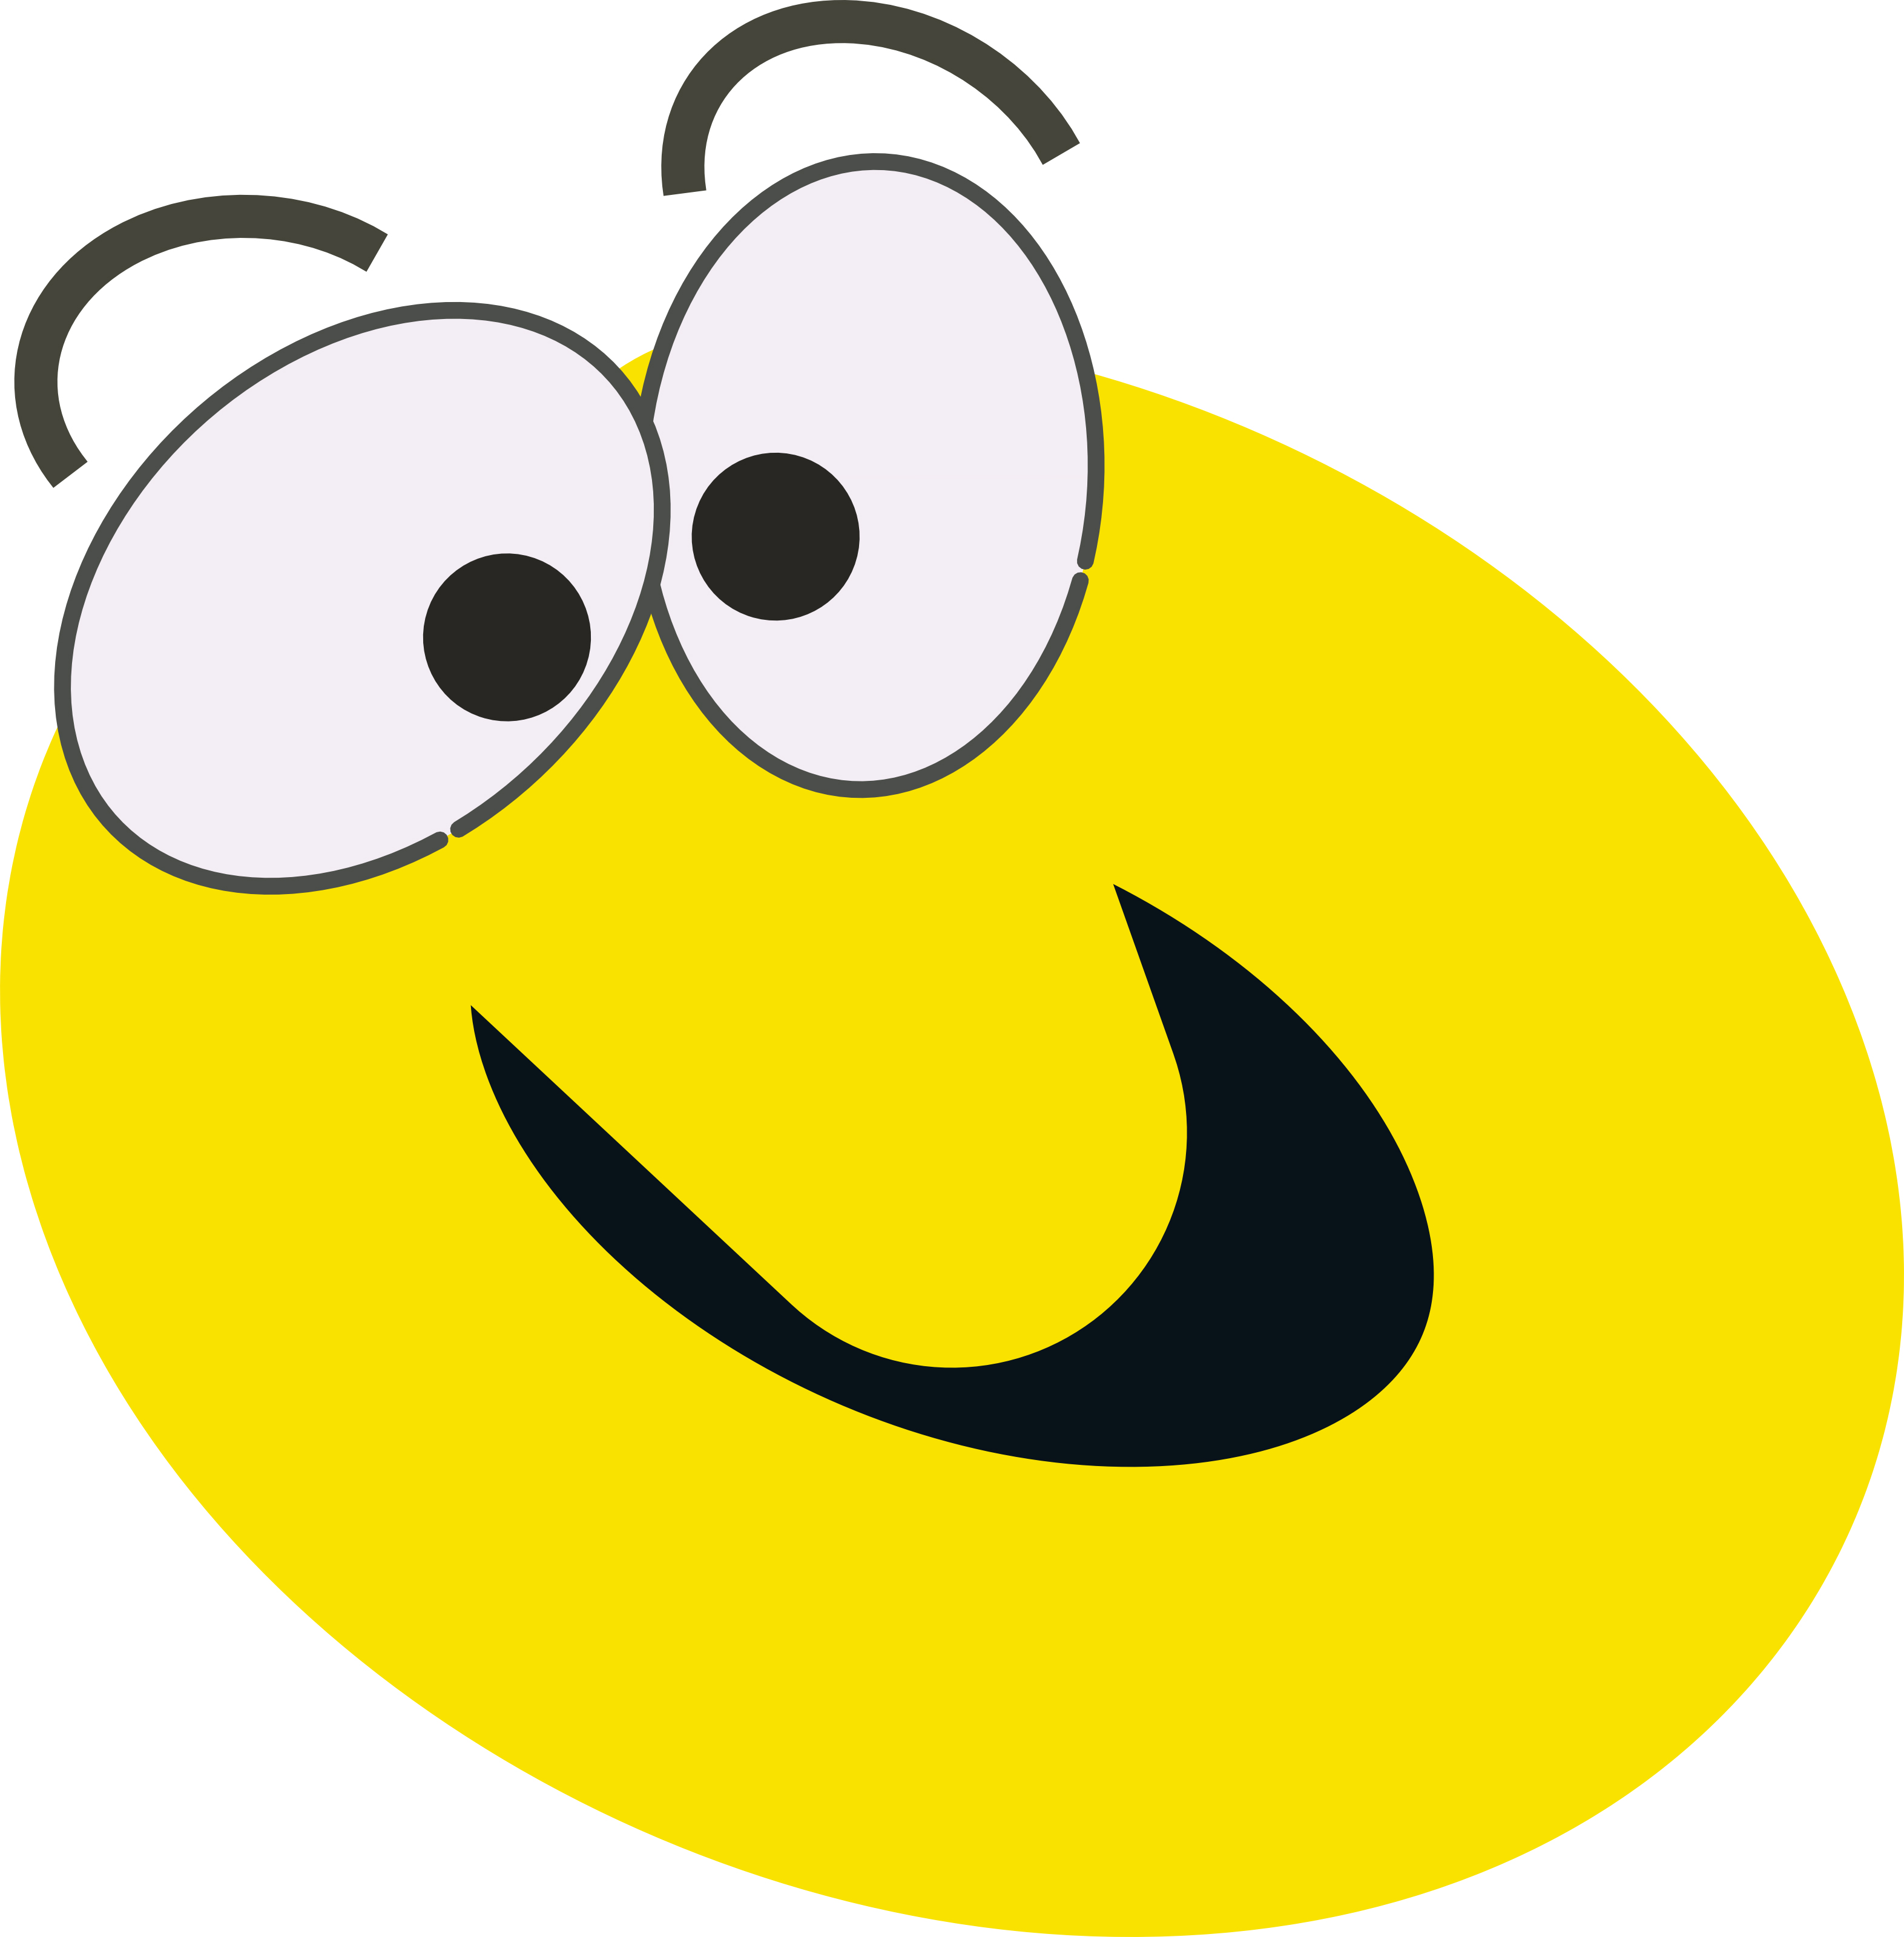 Cartoon Smiling Face - ClipArt Best